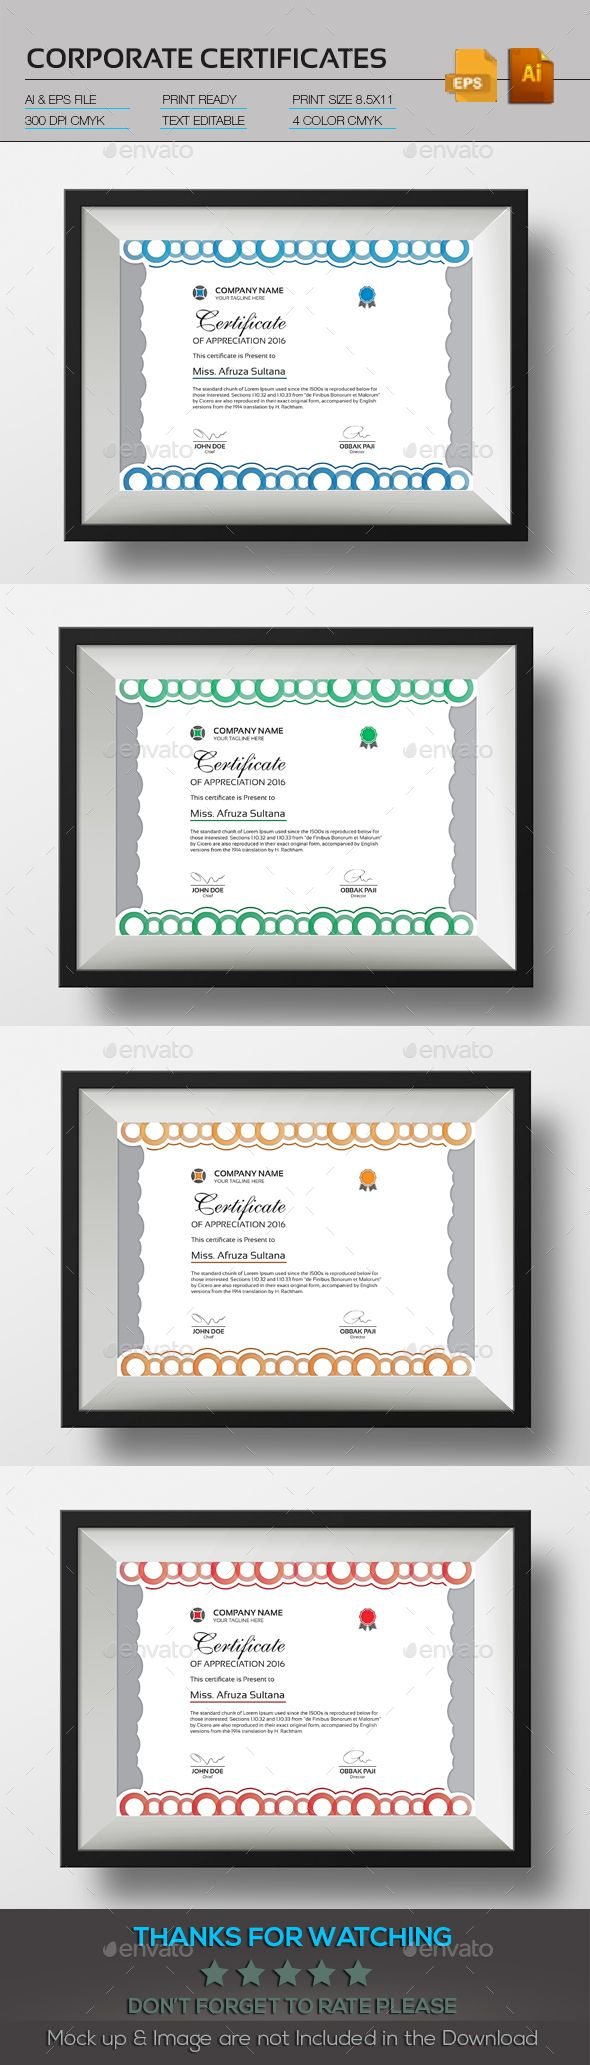 Corporate certificate fonts logos icons pinterest graphics corporate certificate fonts logos icons pinterest graphics font logo and fonts xflitez Choice Image